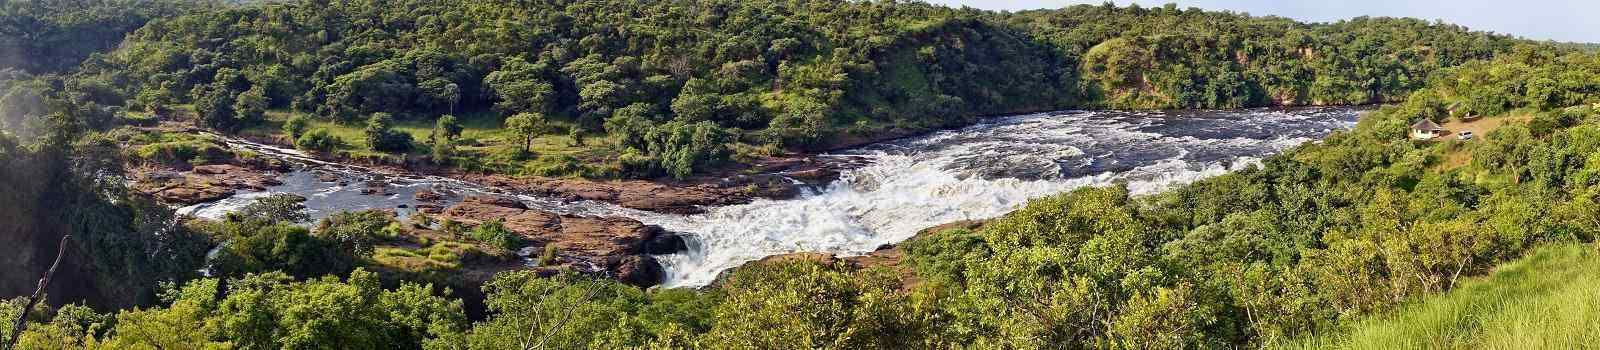 CAD-MT-COUNTRY Panorama of Murchison Falls on the Victoria Nile  Uganda 239252692